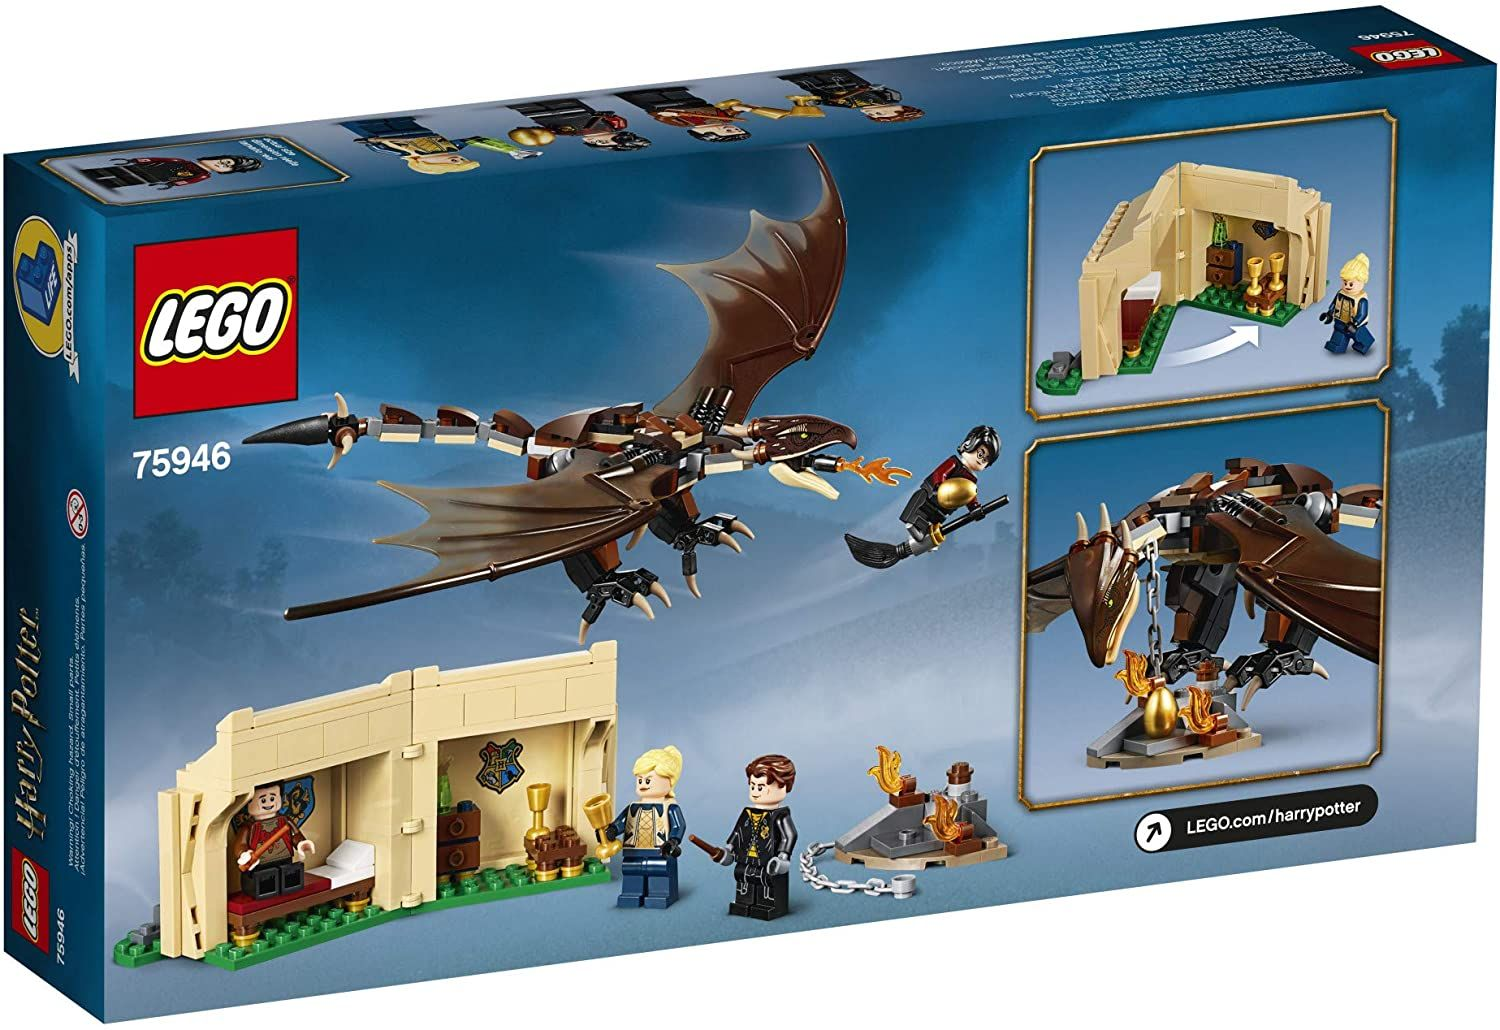 Lego Harry Potter Hungarian Horntail Triwizard Challenge 265 Piece Building Kit Lego 75946 Ages 8 In 2021 Lego Harry Potter Triwizard Harry Potter Lego Sets